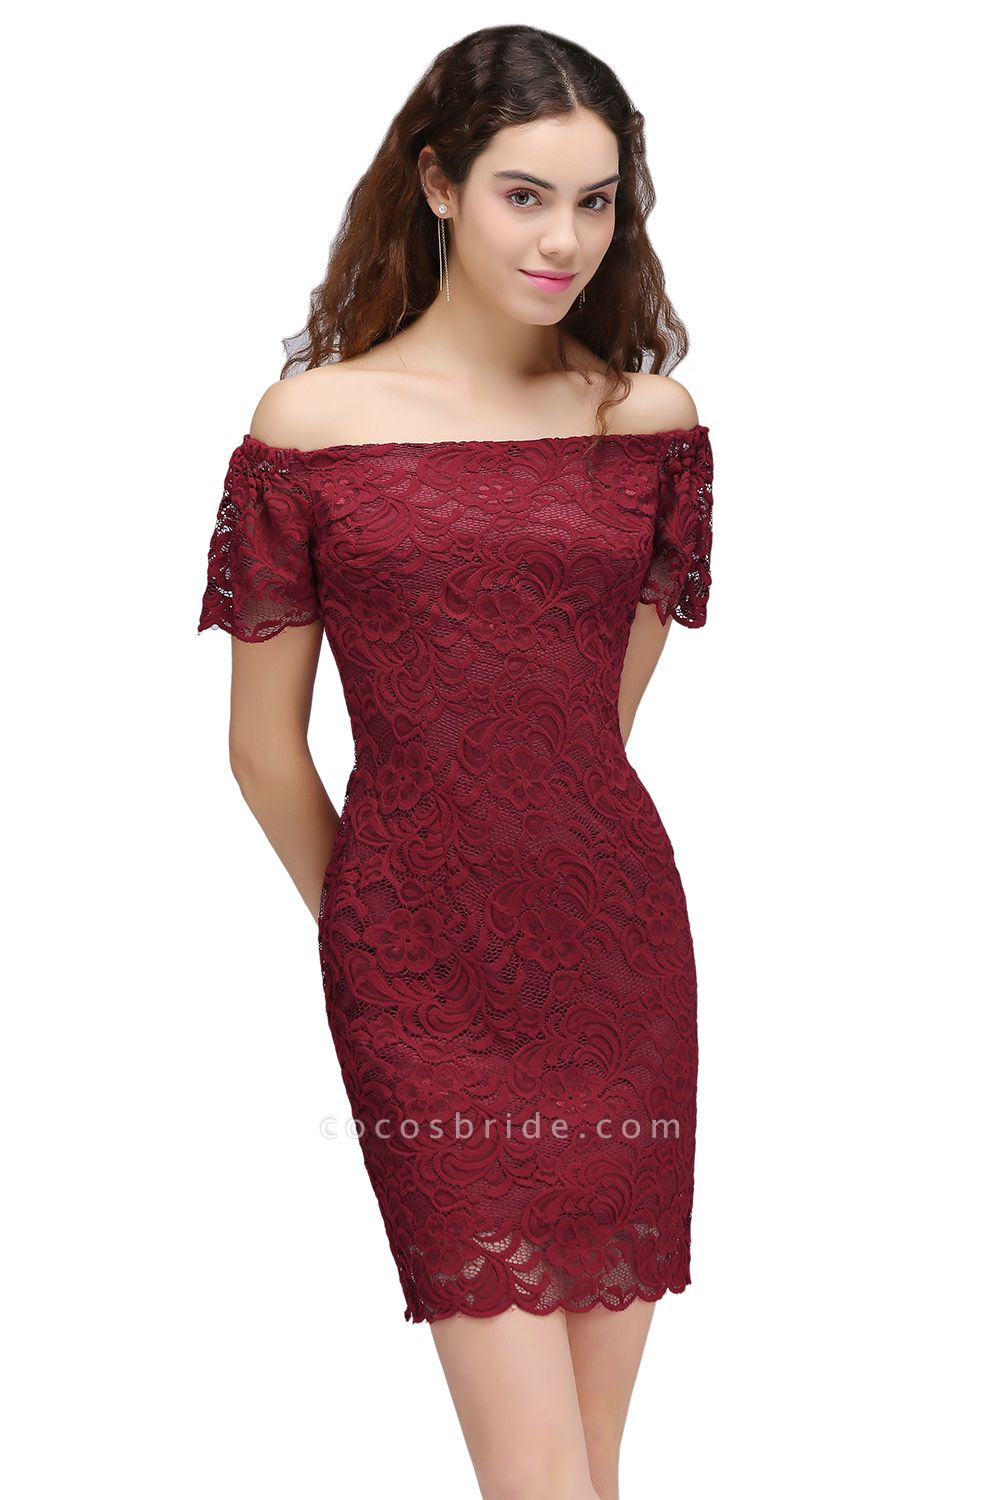 Chic Off-the-shoulder Lace Column Homecoming Dress